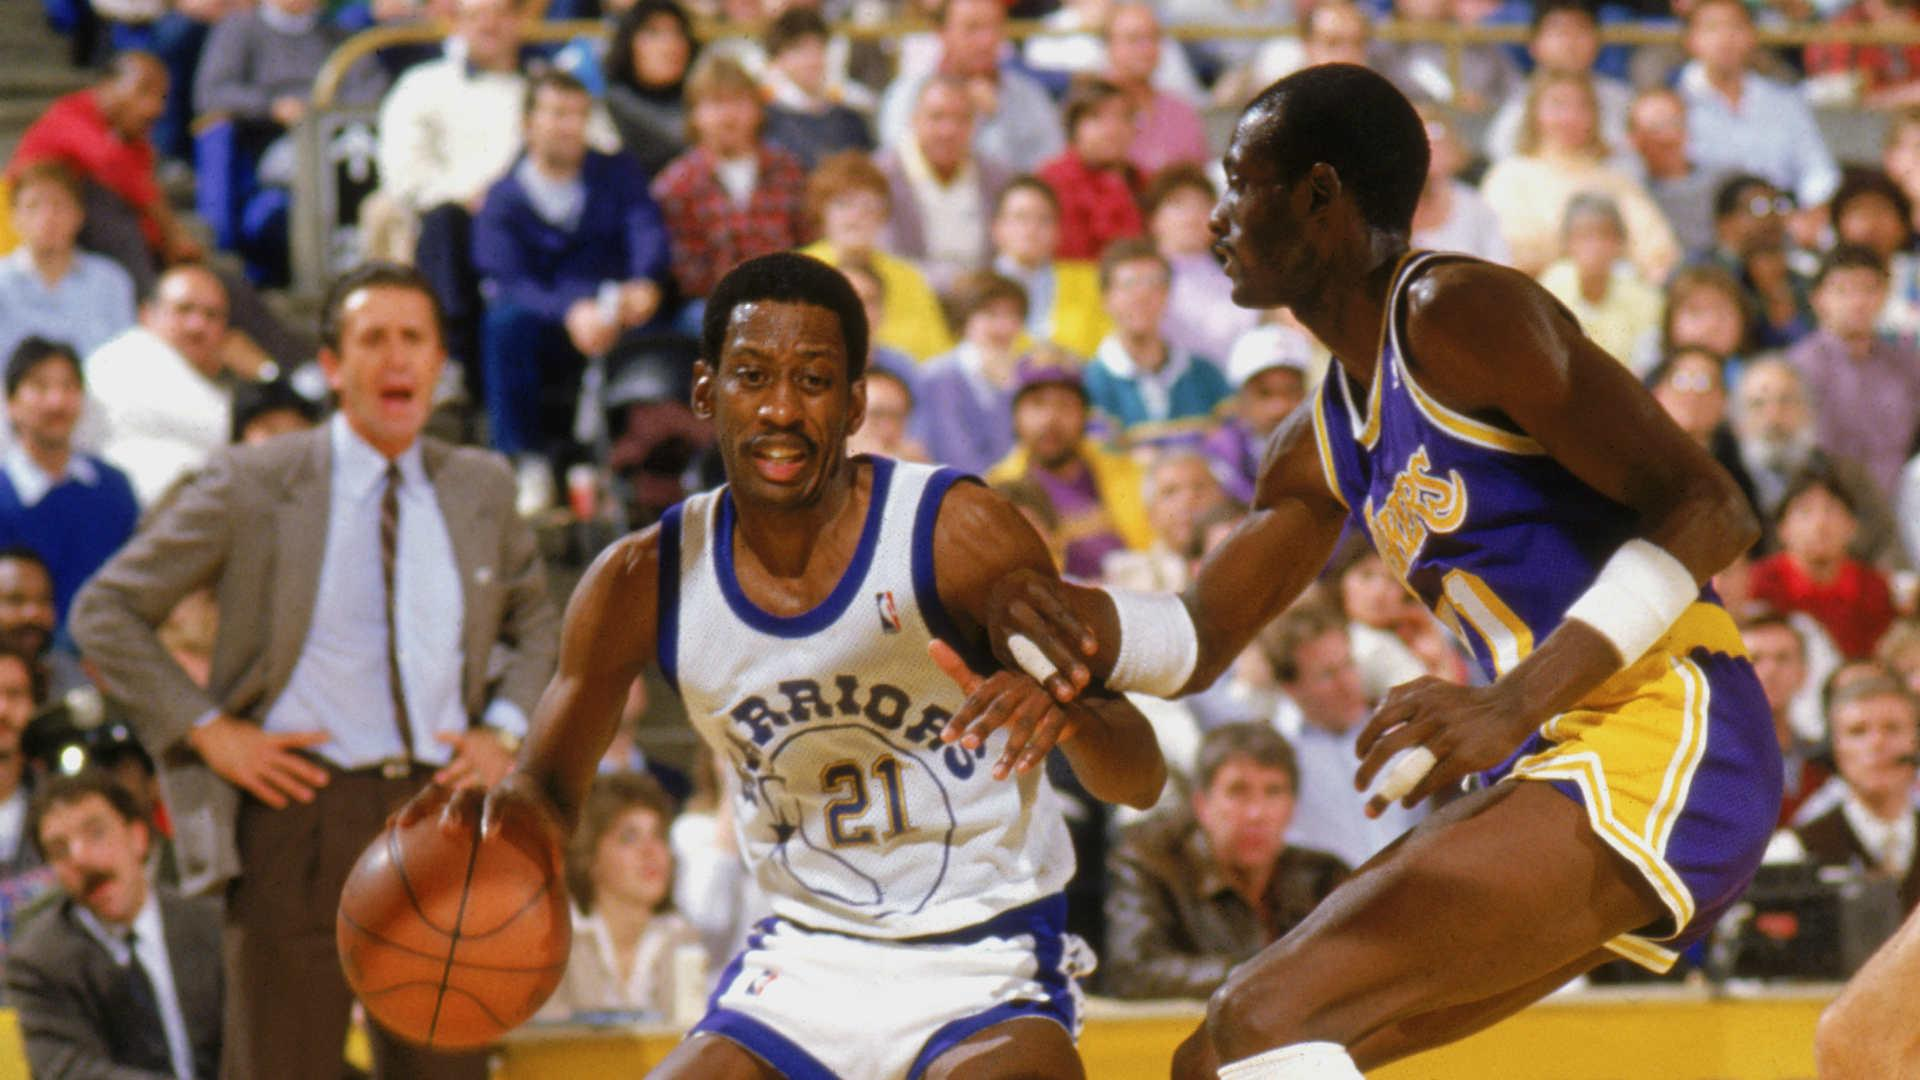 NBA flashback Sleepy Floyd drops playoff record 39 second half on